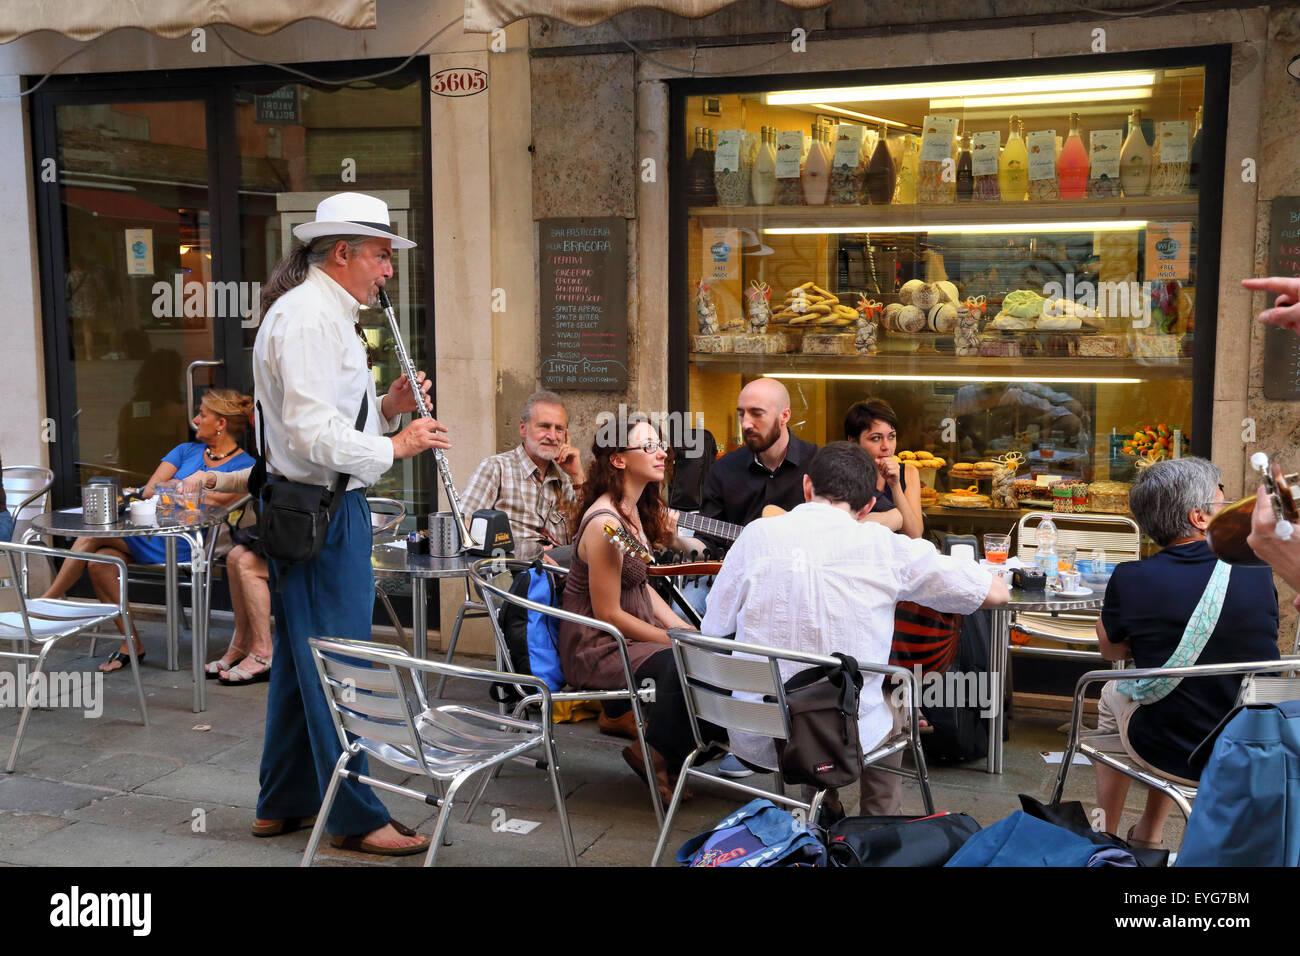 Street musicians buskers - Stock Image